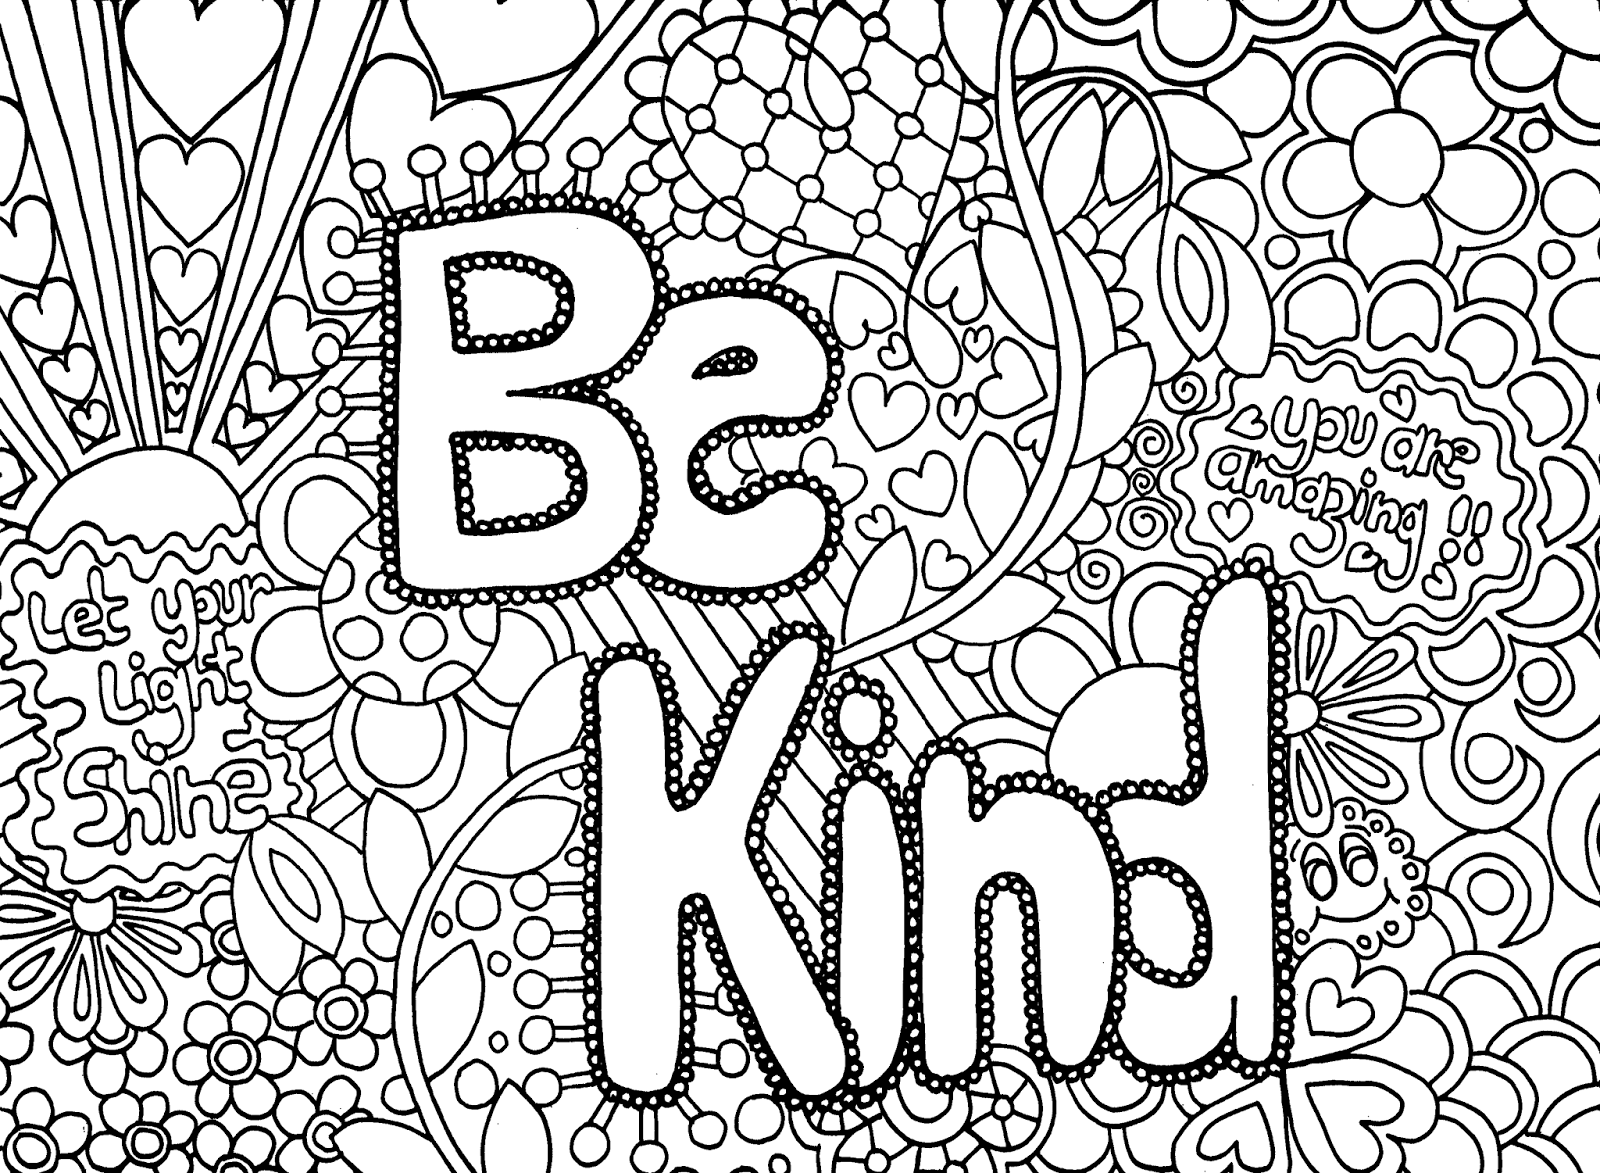 Printable coloring pages for teenage hard - Difficult Hard Coloring Pages Printable Only Coloring Pages